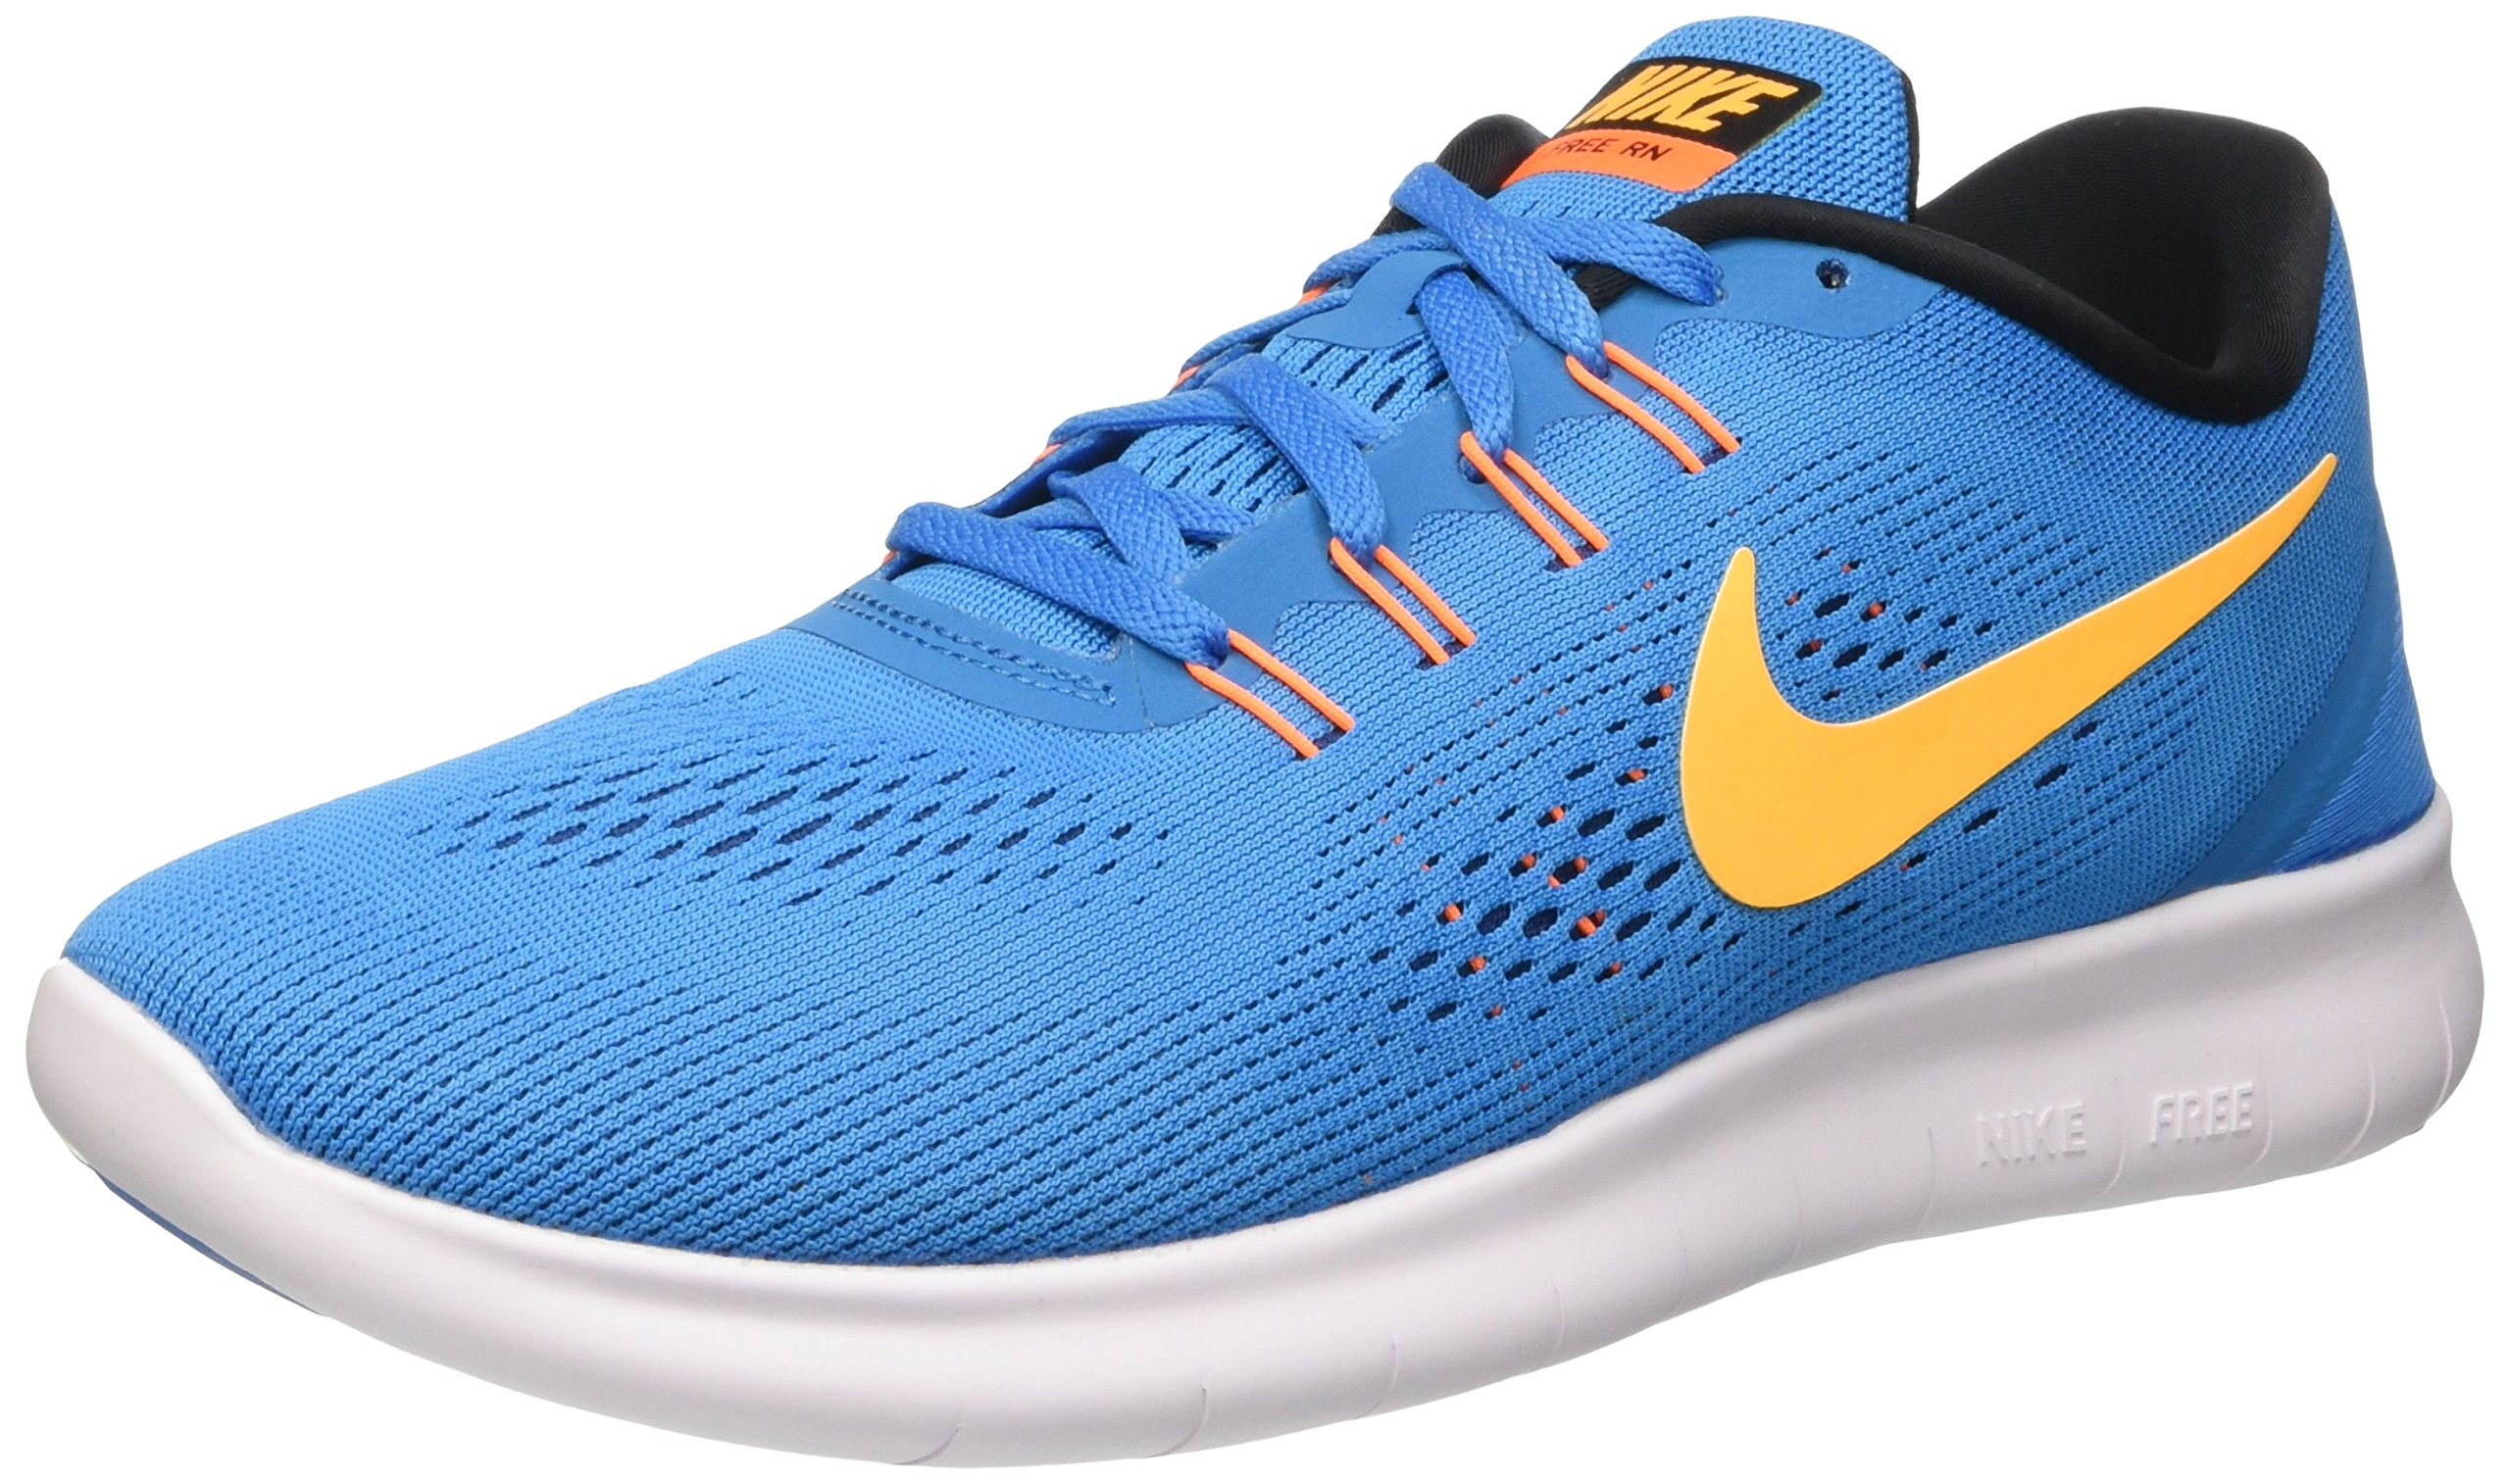 Nike Free RN Heritage Cyan/Black/Blue Spark/Laser Orange Mens Running Shoes by Nike